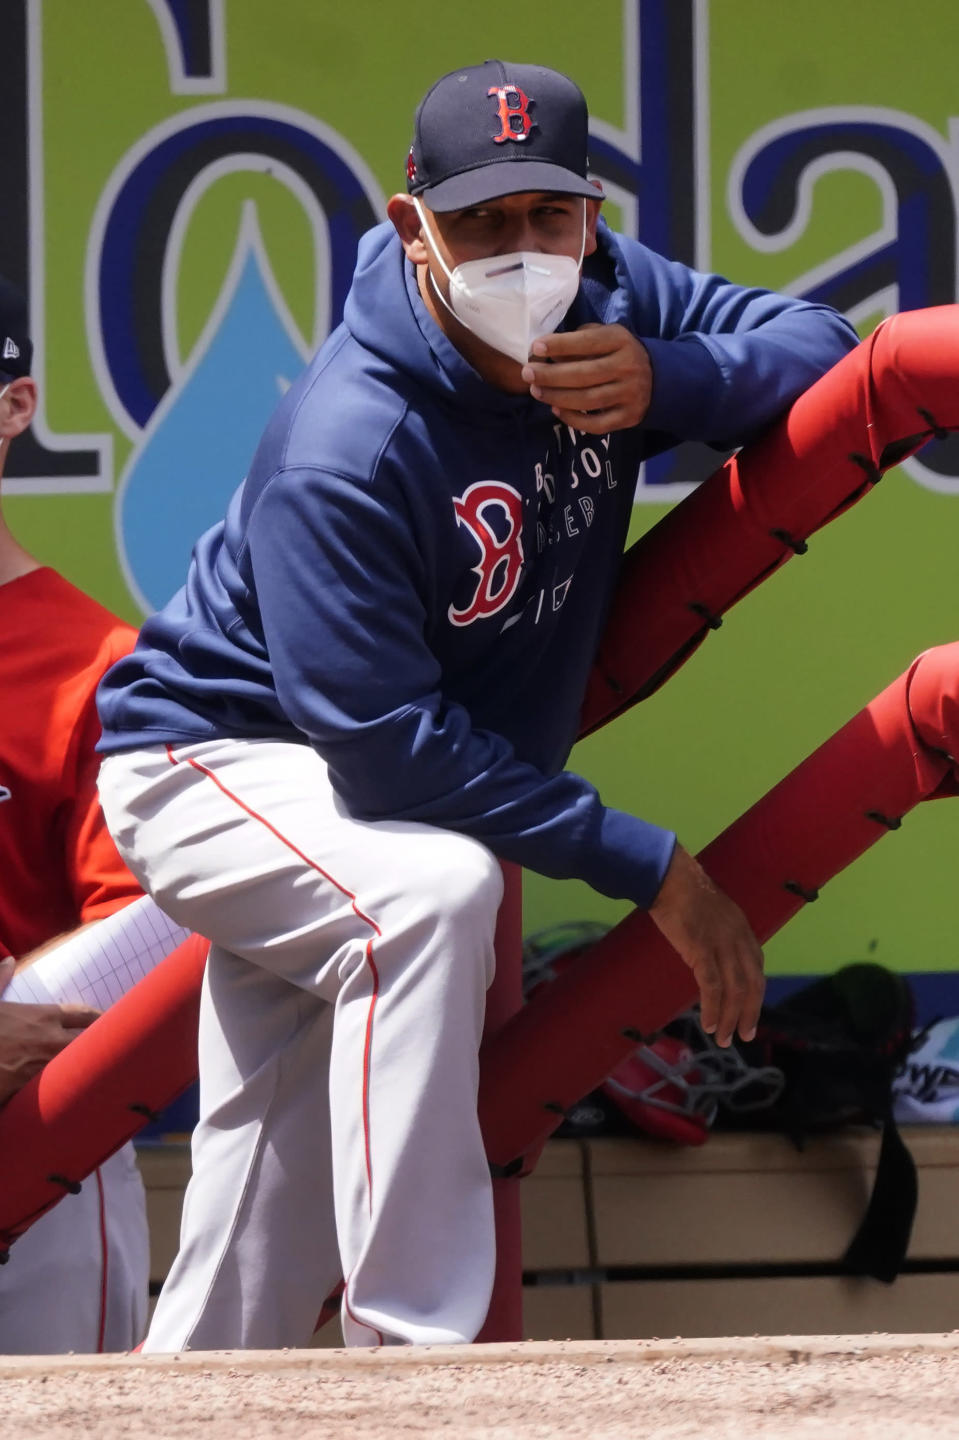 Boston Red Sox manger Alex Cora watches from the dugout as his team plays the Atlanta Braves in a spring training baseball game on Tuesday, March 23, 2021, in North Port, Fla. (AP Photo/John Bazemore)